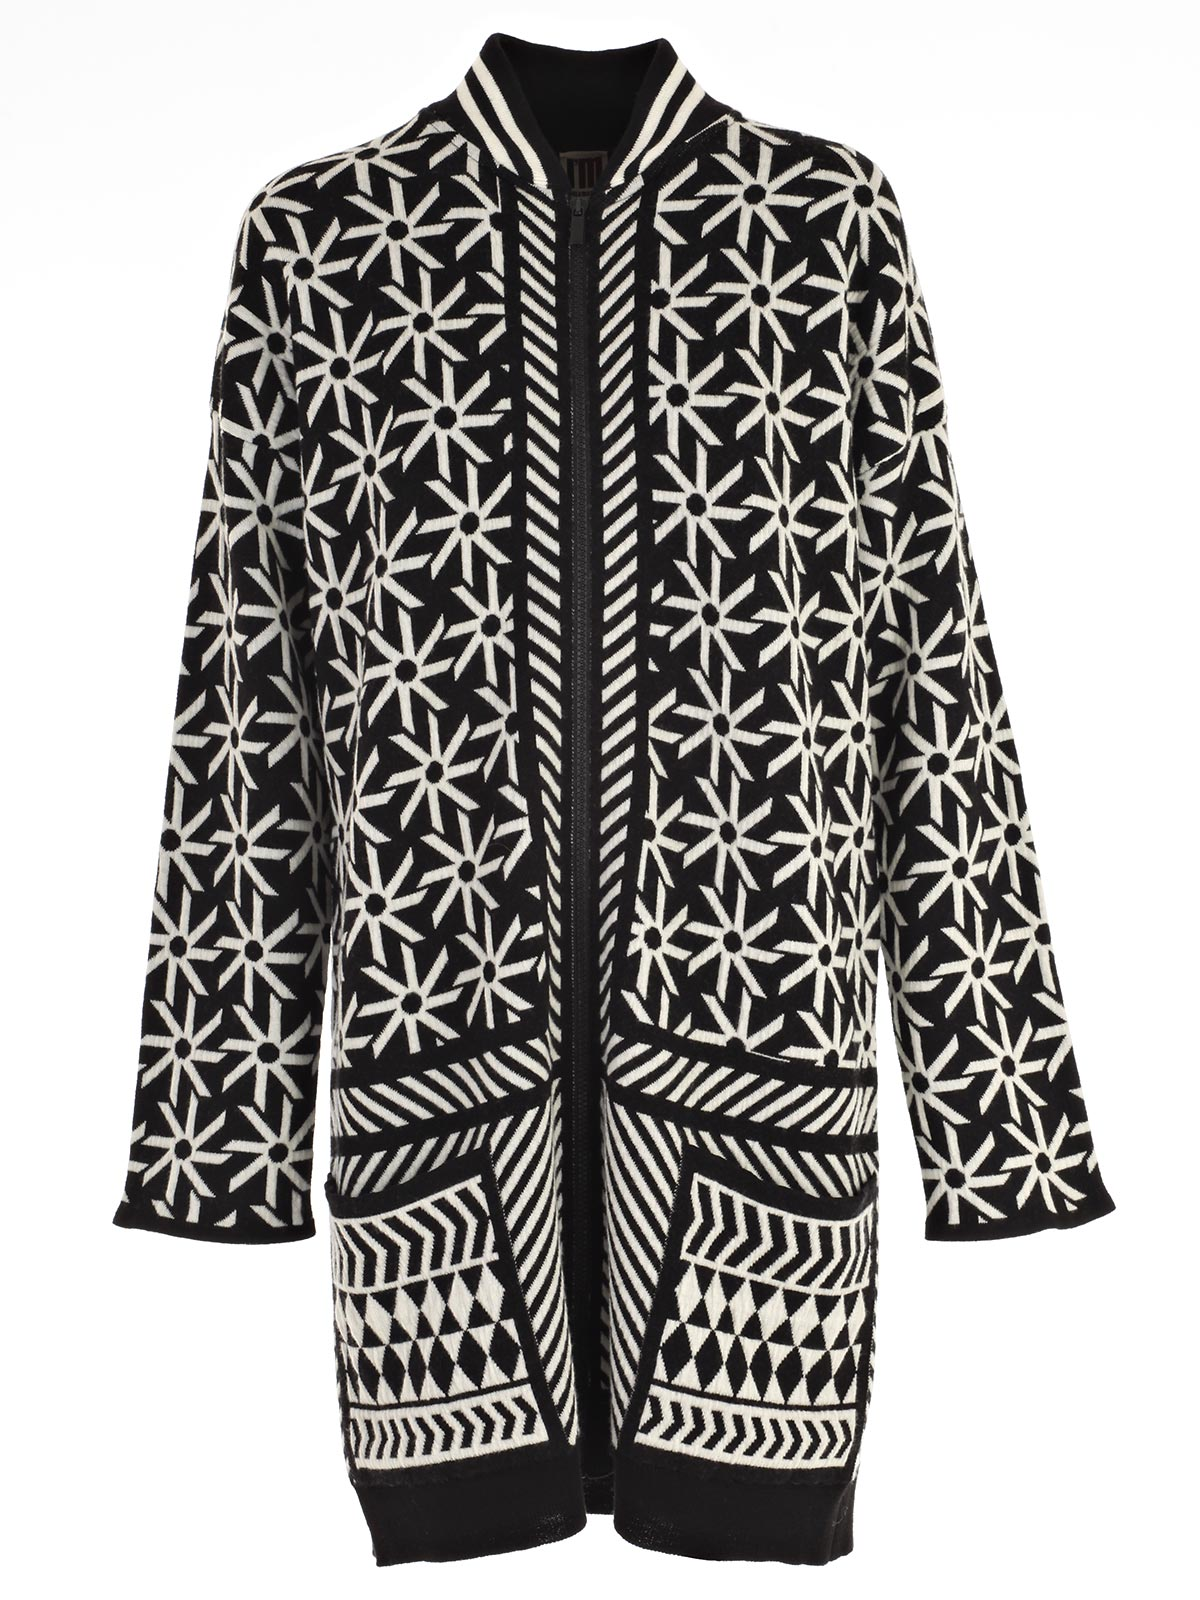 Picture of I'M ISOLA MARRAS JERSEY CARDIGAN JACQUARD MULTICOLOR